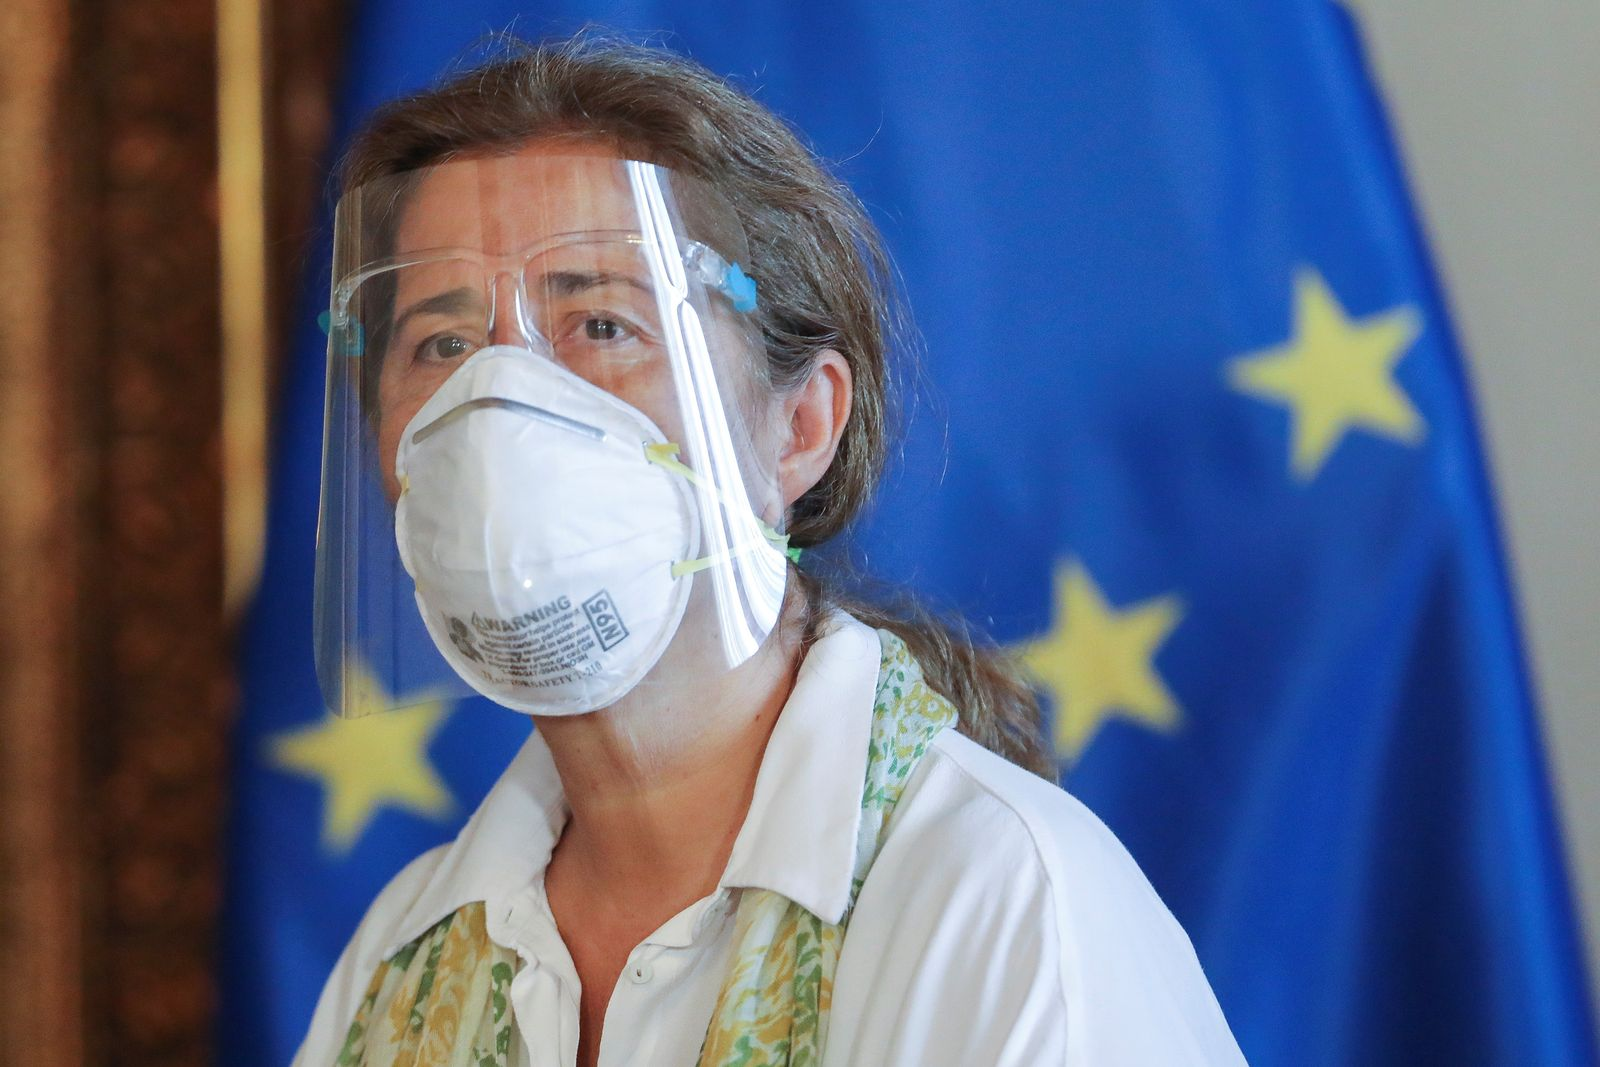 The ambassador of the European Union to Venezuela, Isabel Brilhante Pedrosa, is pictured at the Foreign Ministry headquarters in Caracas